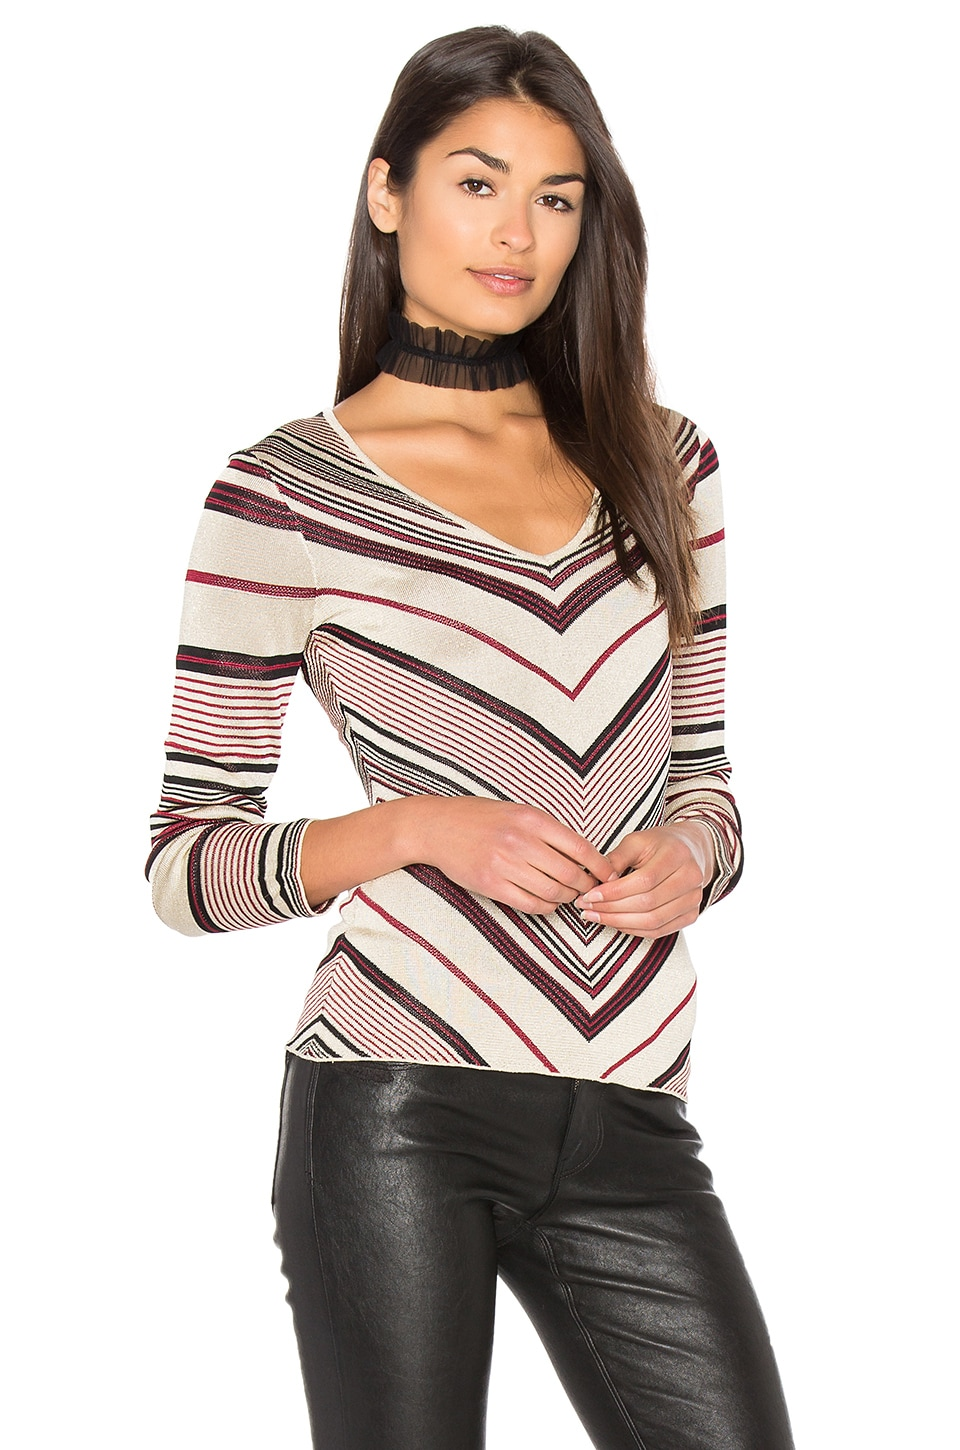 MAJORELLE Before Sunset Top in Lurex Stripe